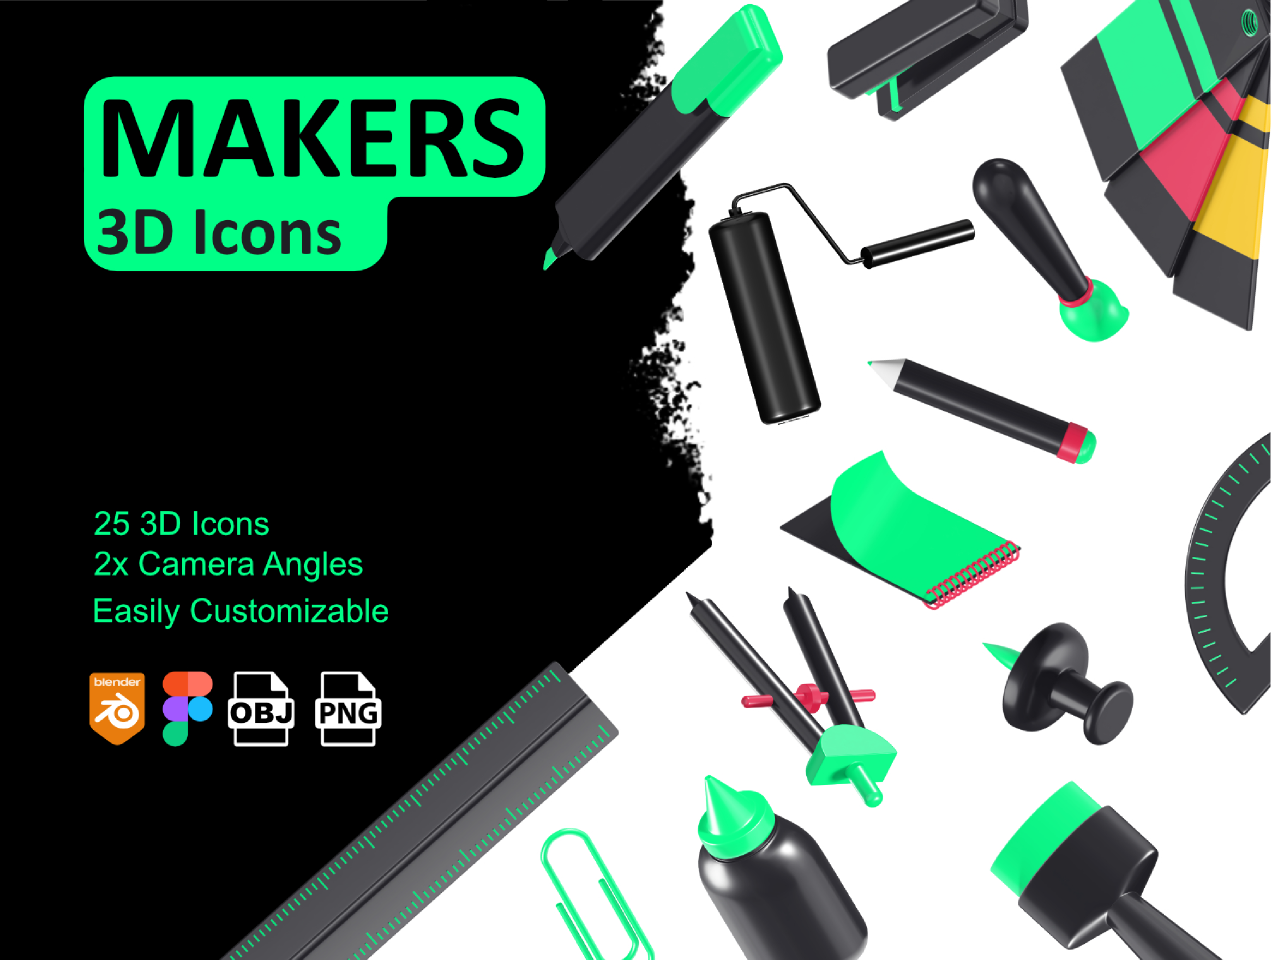 Free figma icons Makers-3D icons